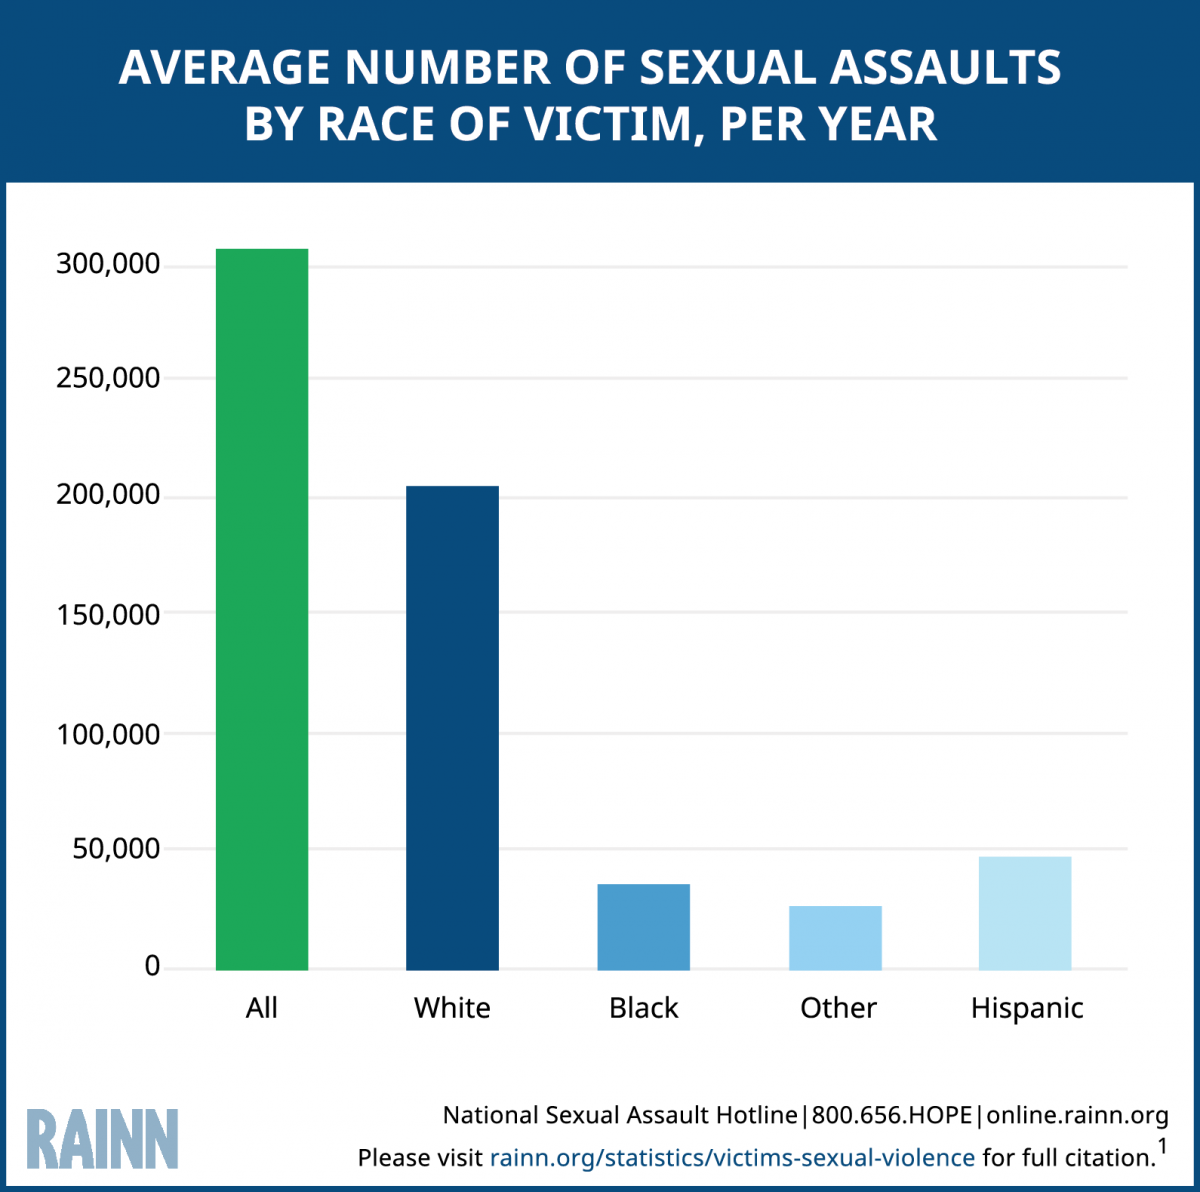 Bar graph depicts the average number of sexual assaults by race, per year. Races include white (180,000), black (25,000), hispanic (40,000), and other (20,000). Total is approximately 290,000.